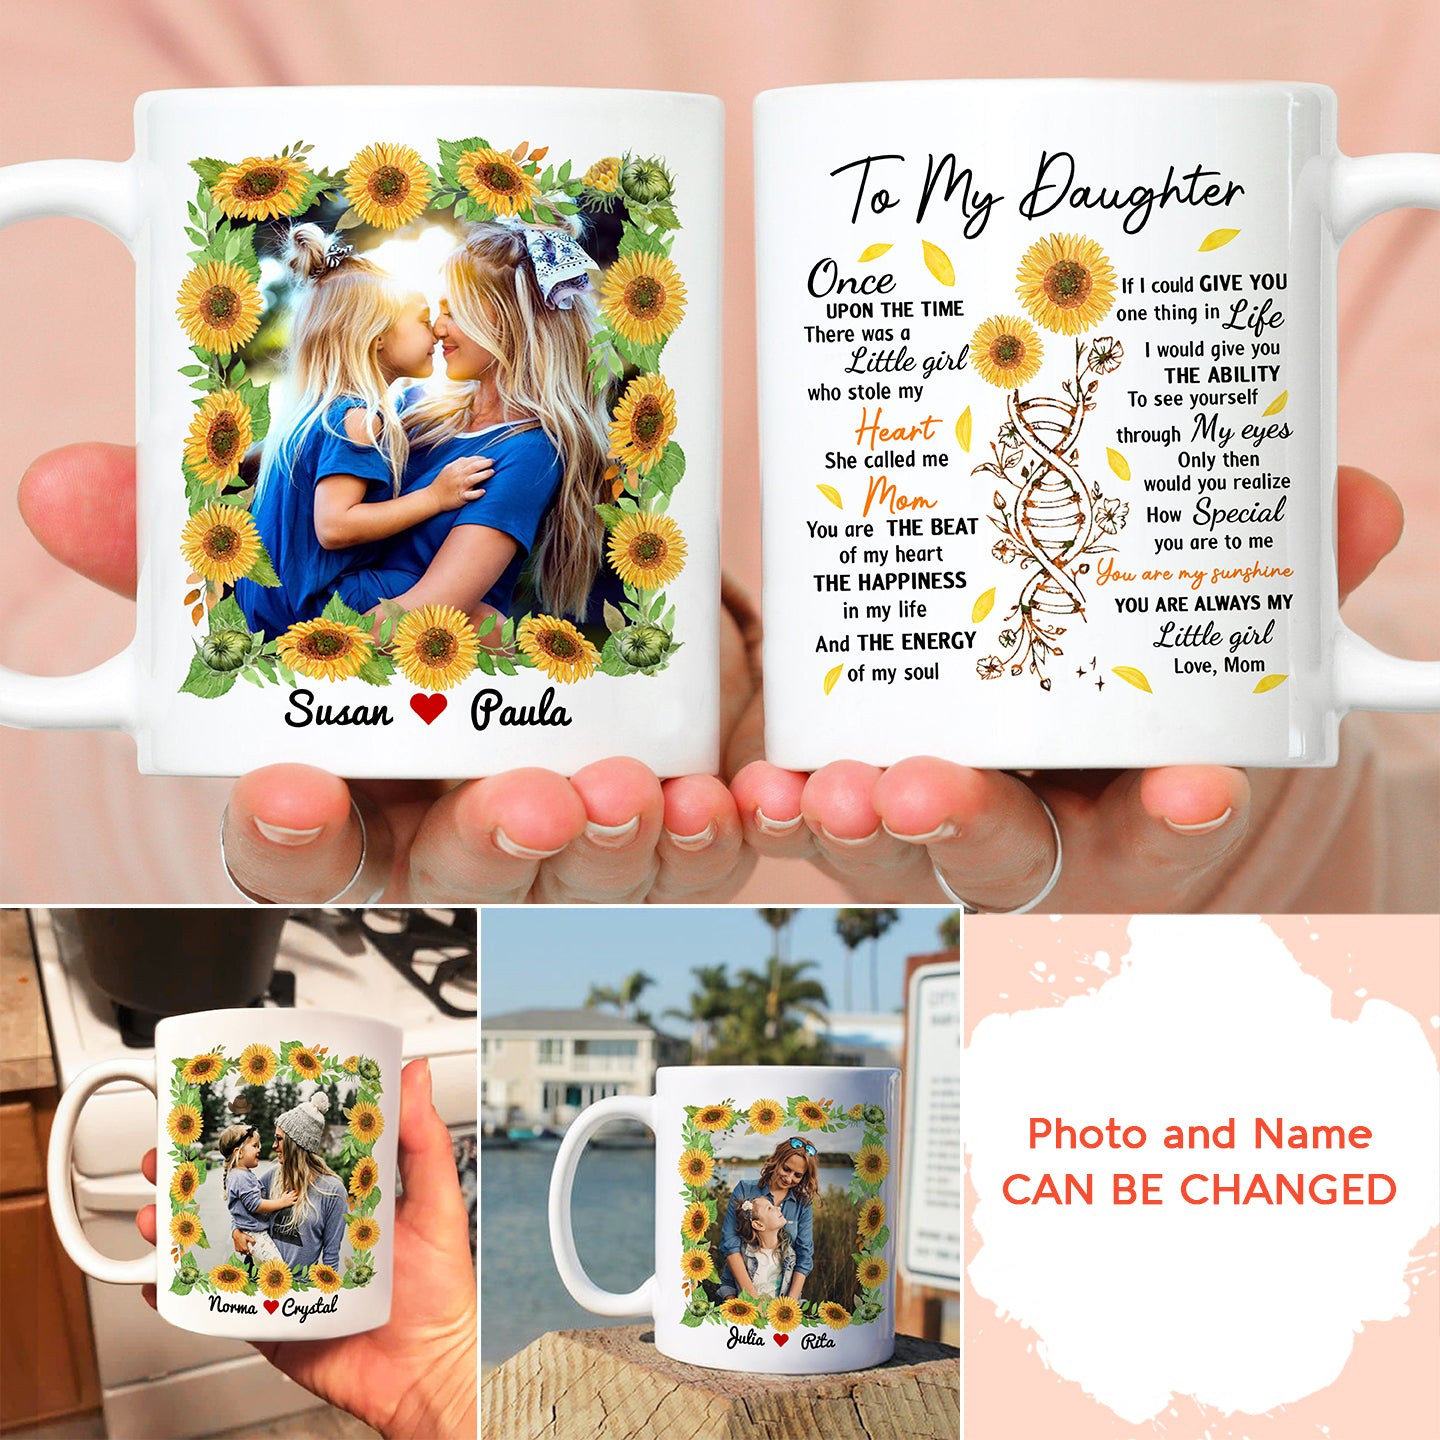 Personalized Custom Coffee Mug – Once Upon A Time There Was A Little Girl – Gift For Daughter, Customize Photo, Sunflowers Mug, Birthday Gifts - 8840